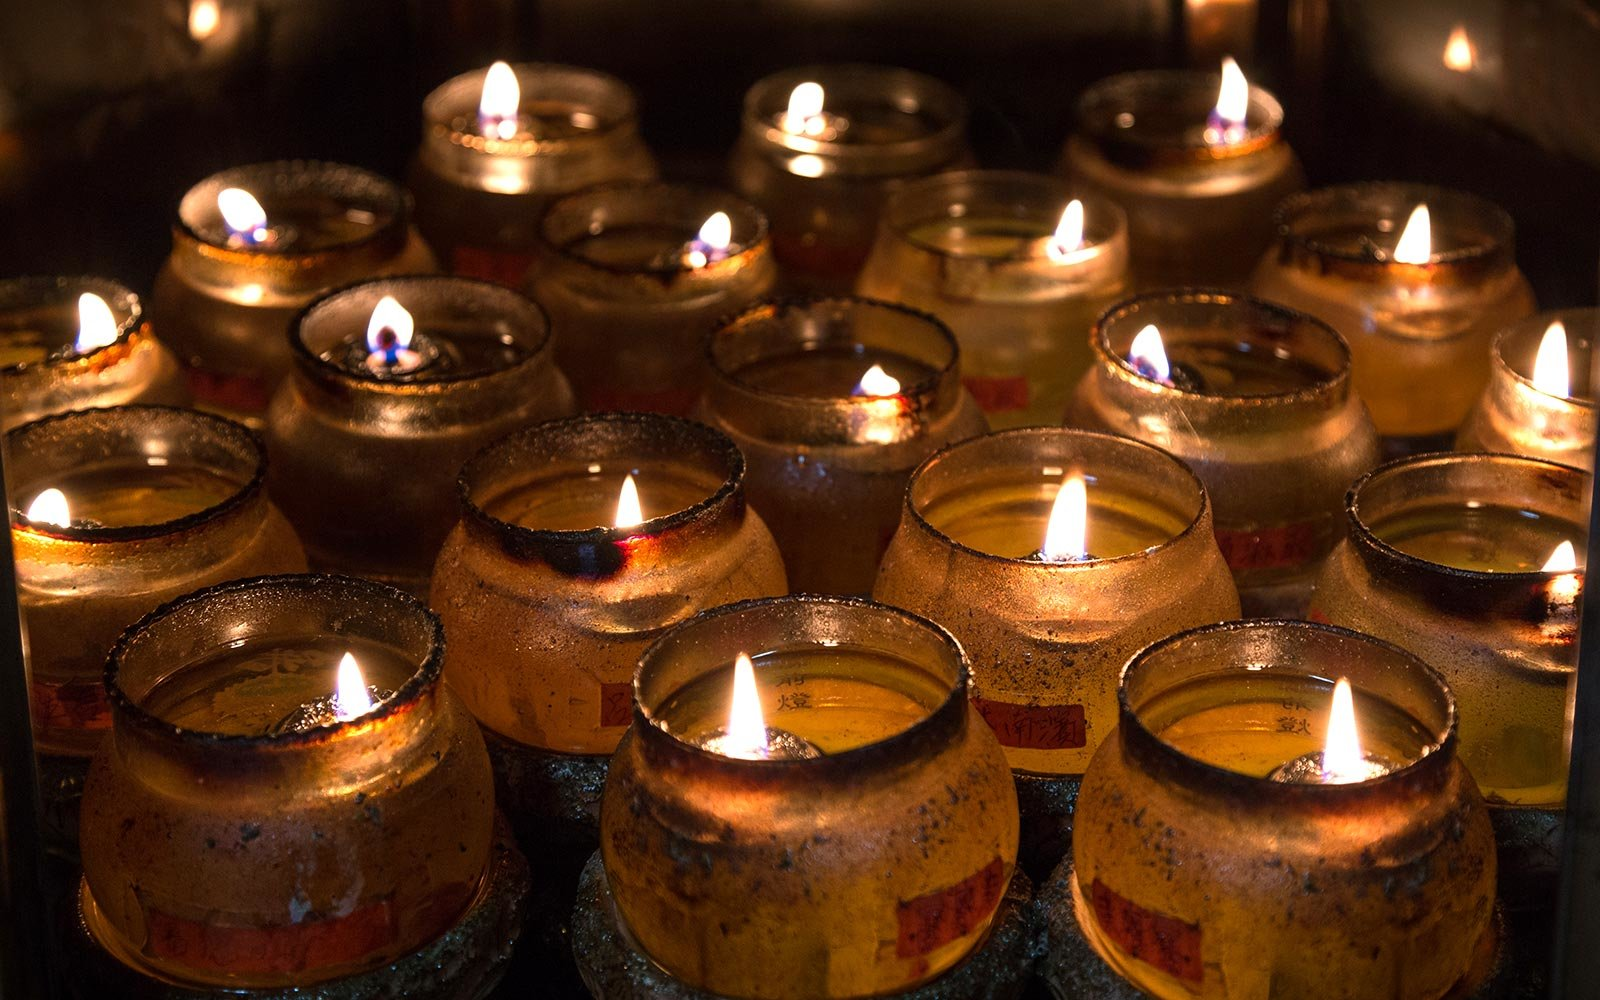 You've been burning candles wrong your whole life